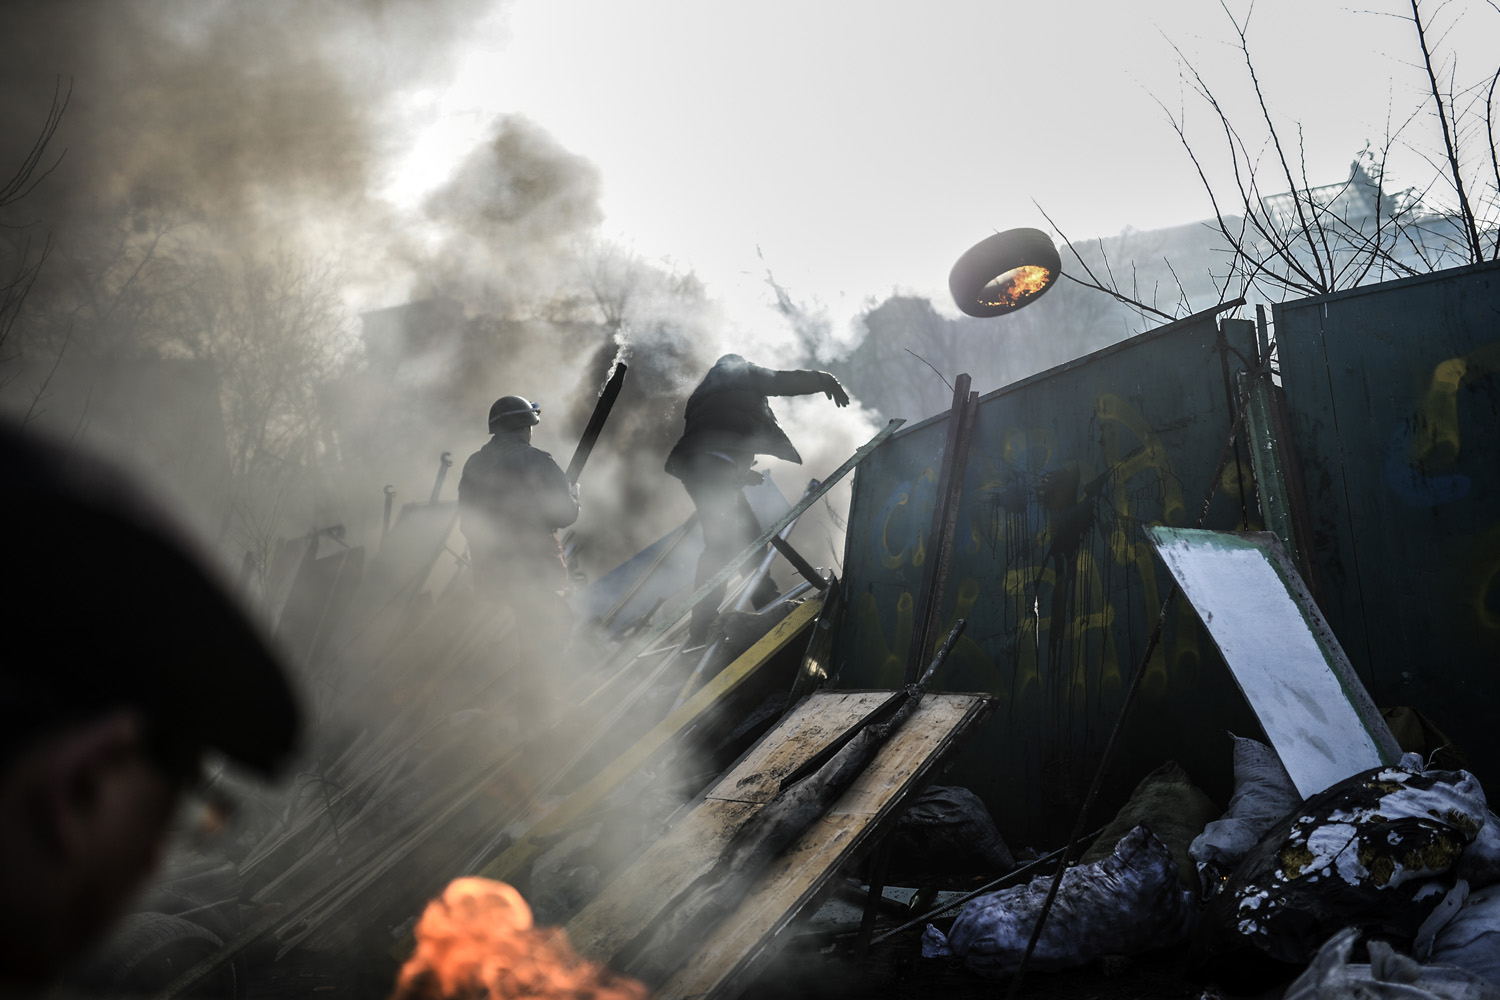 An anti-government demonstrator throws a burning tire as he build a barricade on February 21, 2014 at the Independent square in Kiev.